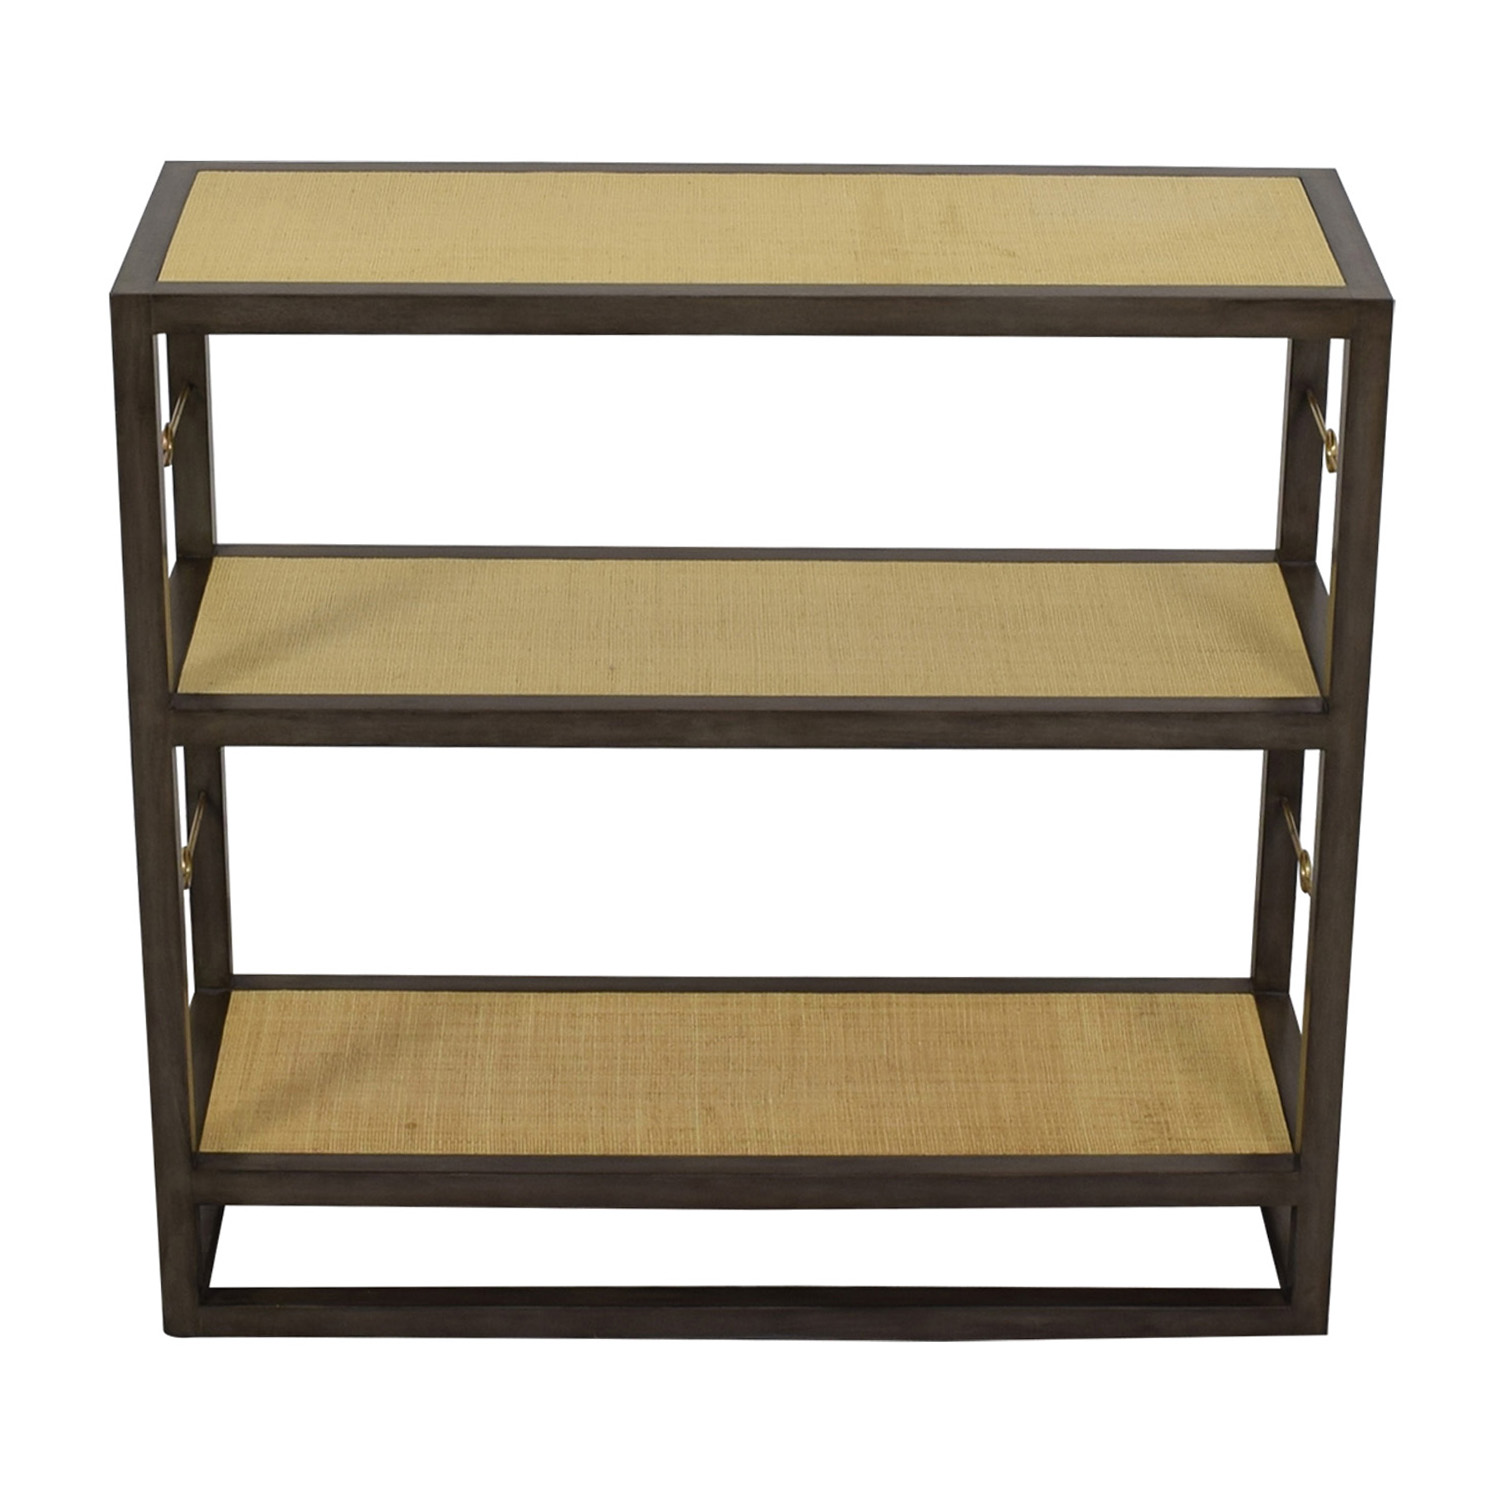 Serena & Lily Serena & Lily Low Bookcase on sale